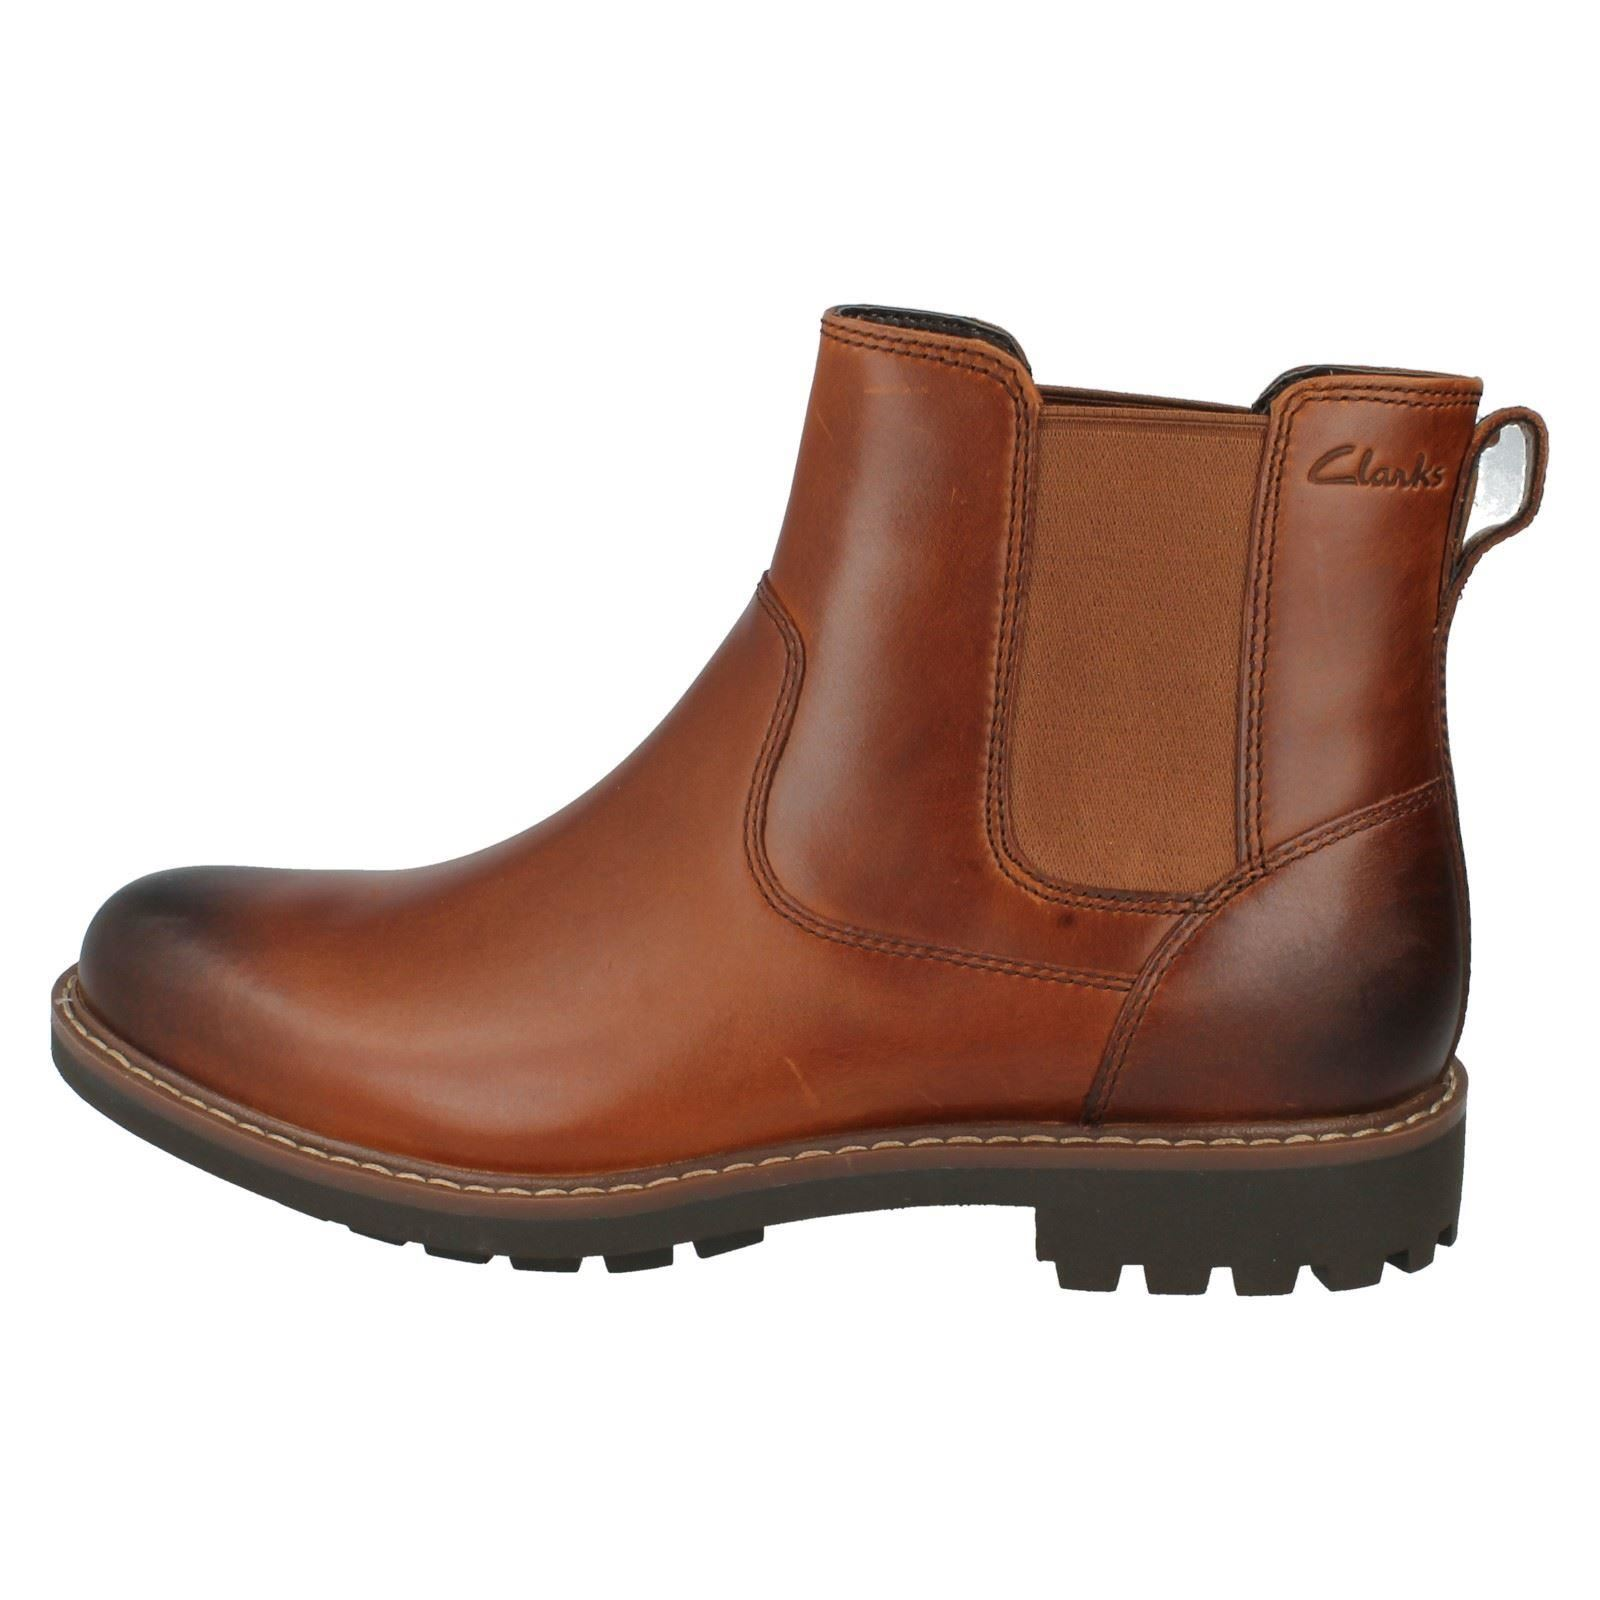 Chelsea Style Clarks Shoes